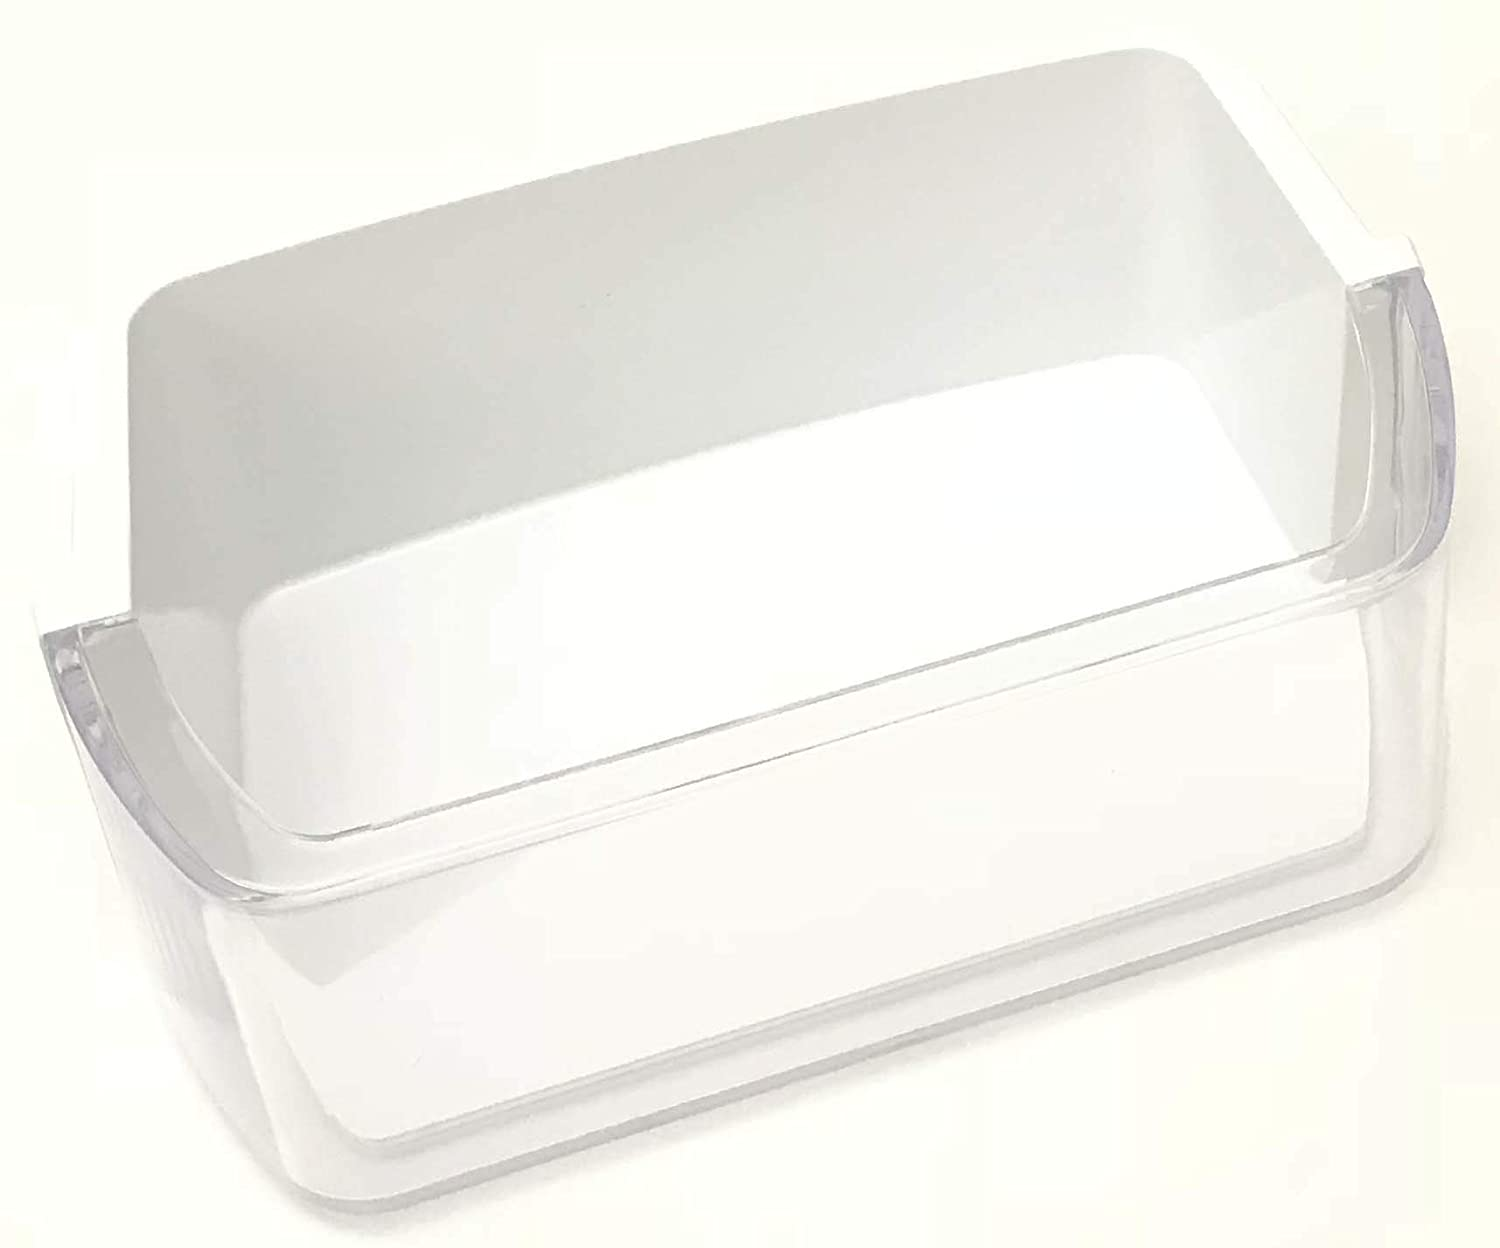 OEM Samsung Refrigerator Door Bin Basket Shelf Tray Specifically For RF220NCTASR, RF220NCTASR/AA, RF220NCTASR/AA-0001